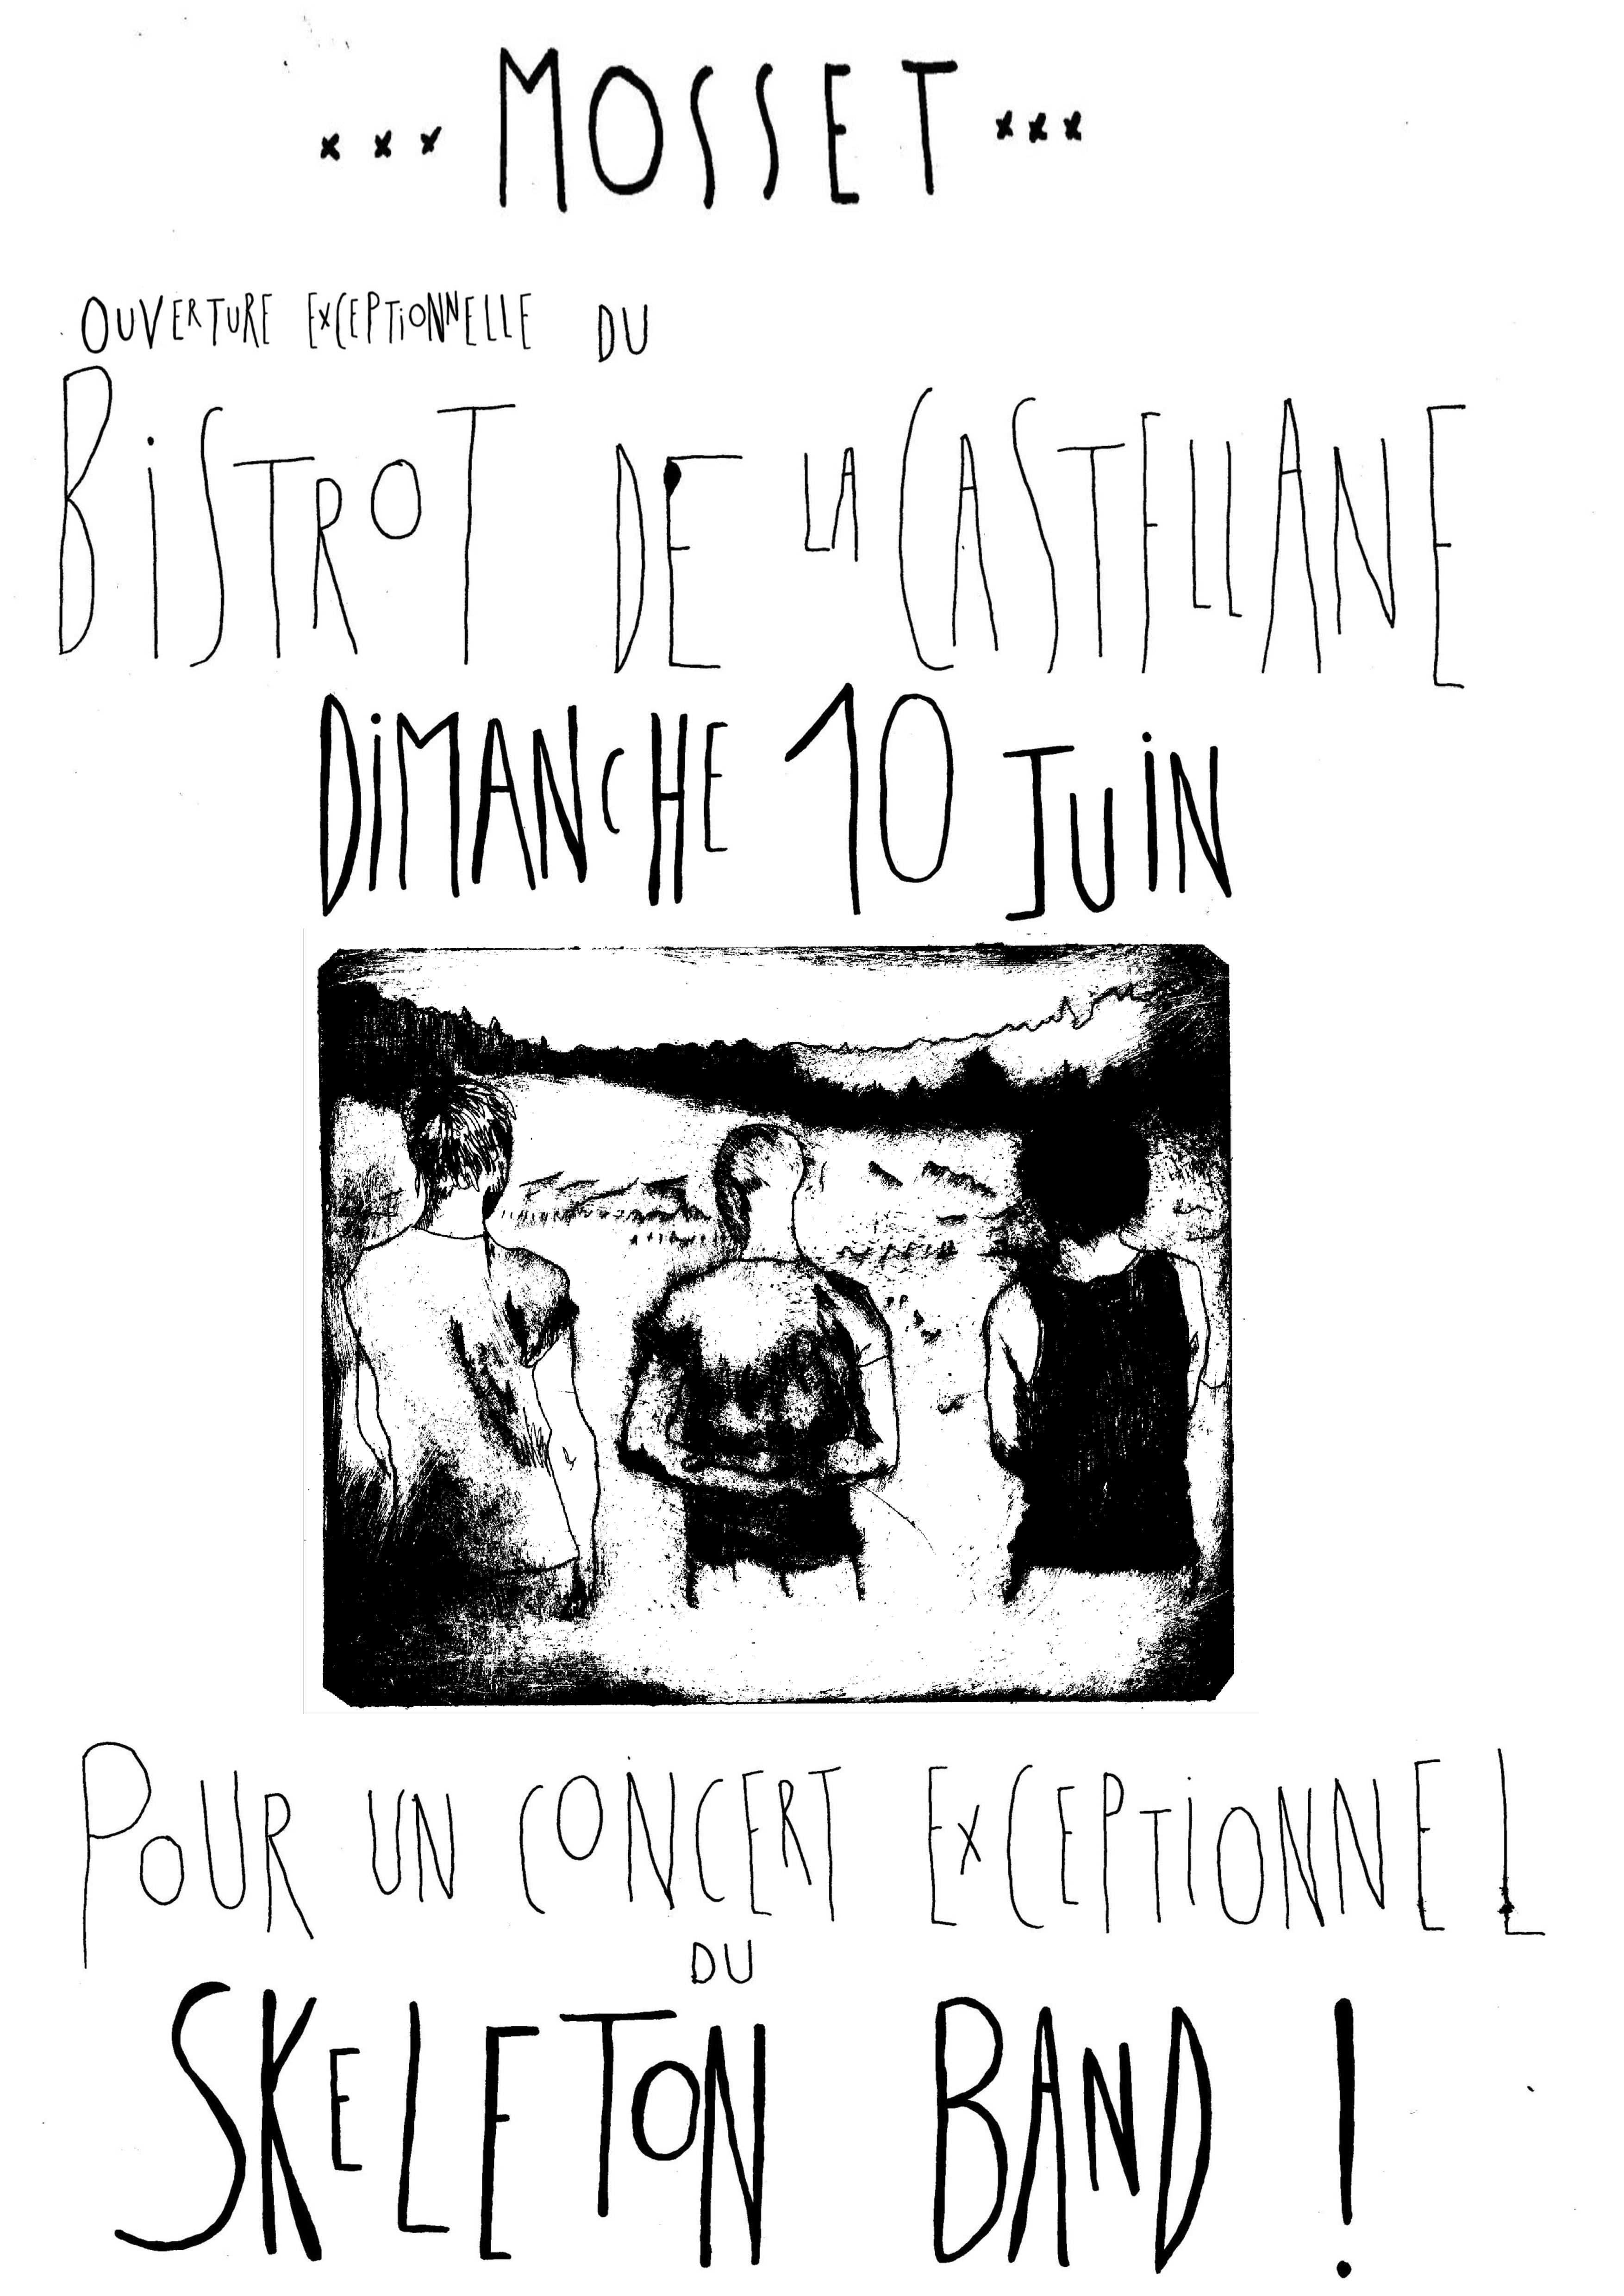 Skeleton Band Affiche-page-001